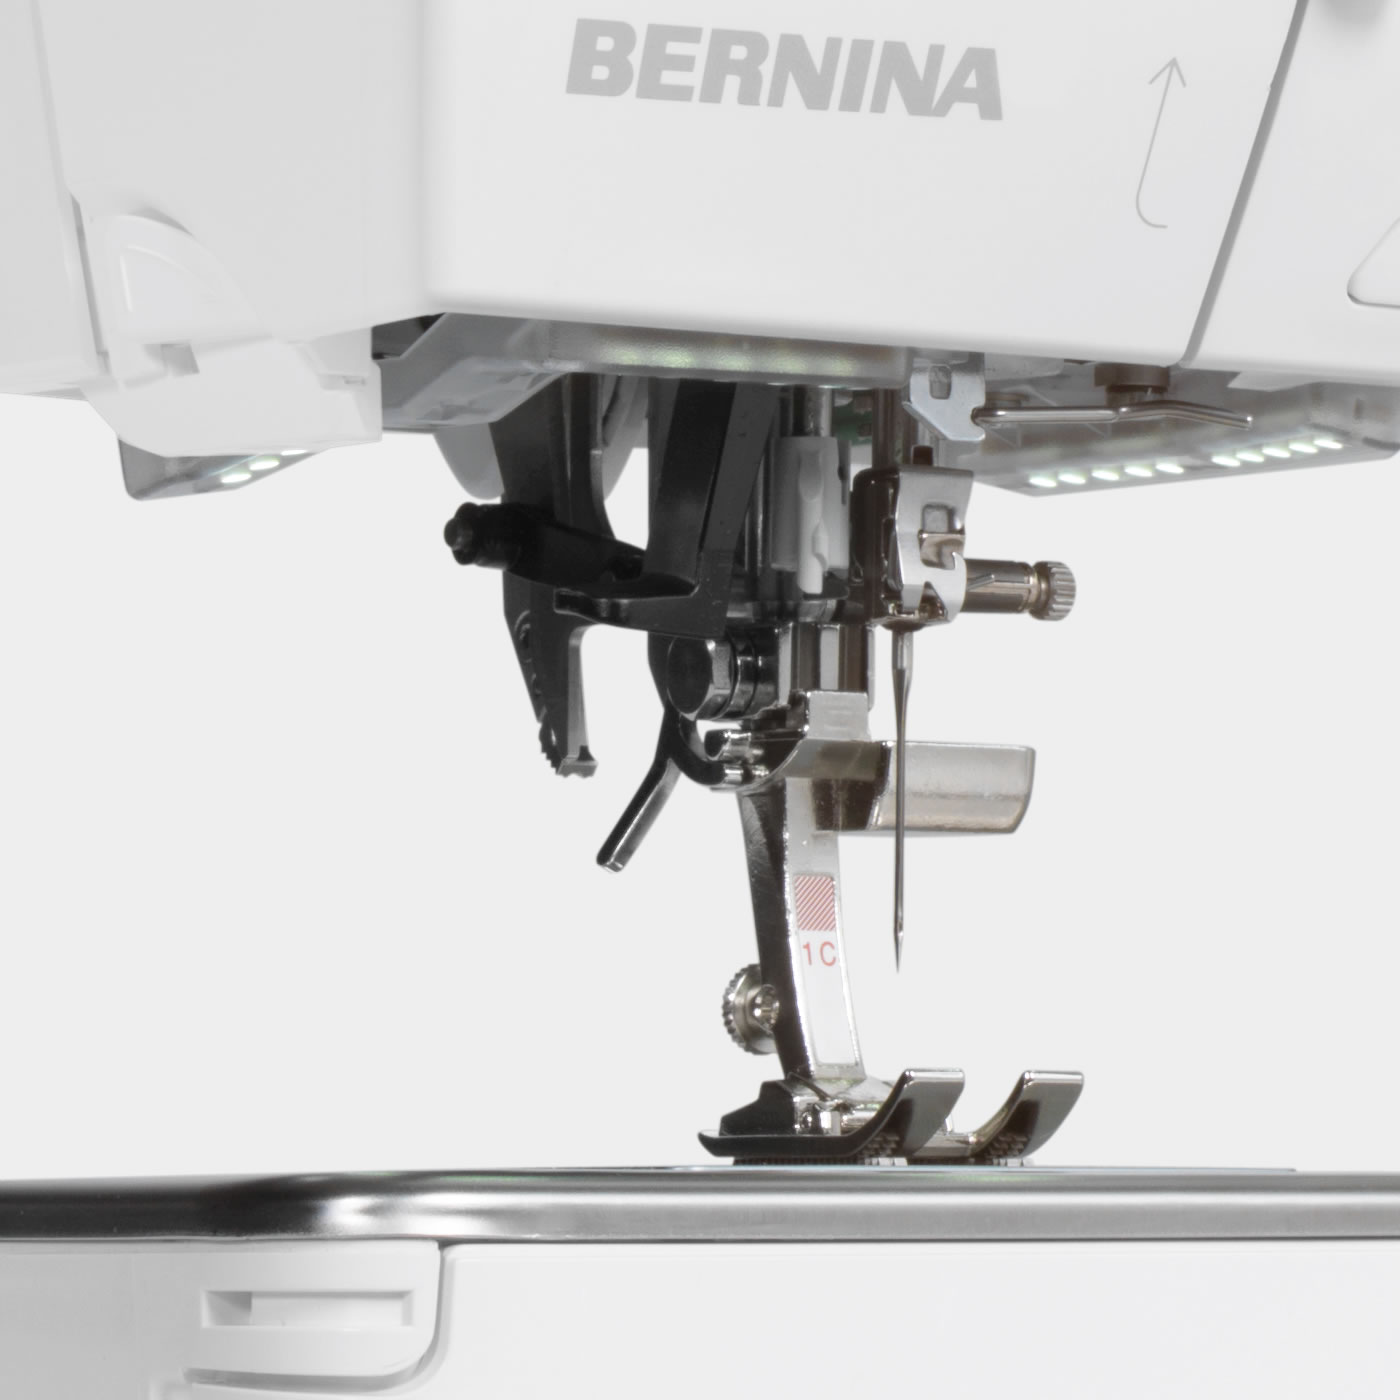 Bernina 710 with the bernina 9 hook unlimited creativity bernina greater sewing pleasure fandeluxe